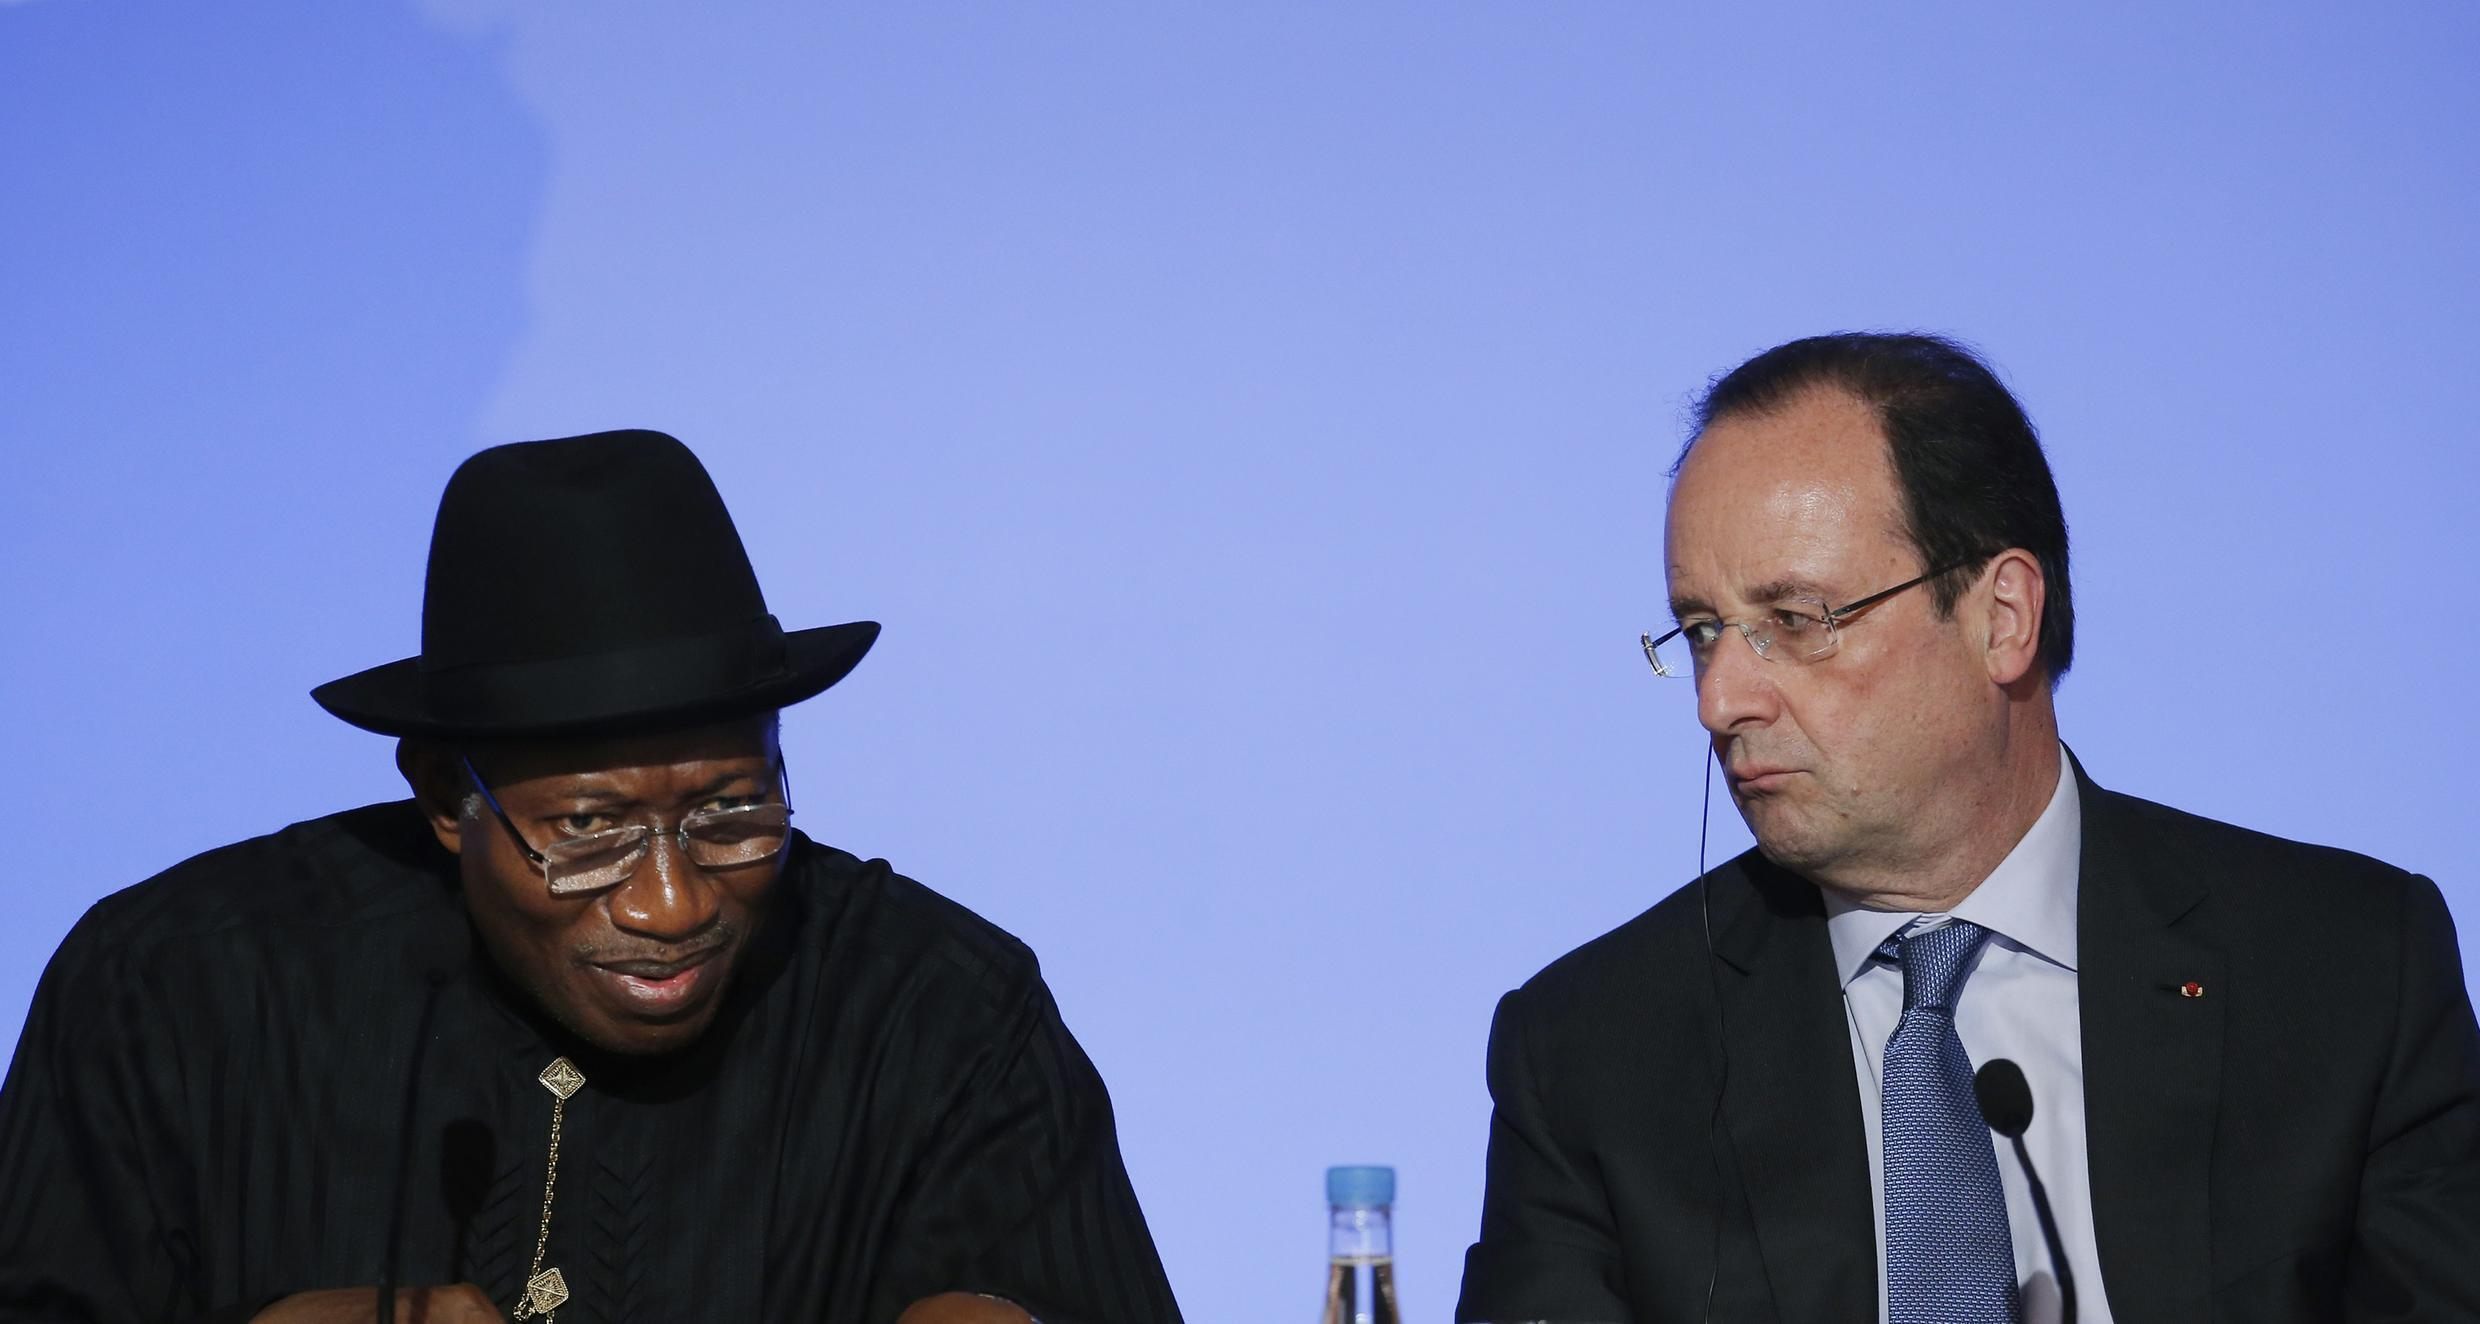 French President François Hollande (R) and Nigerian President Goodluck Jonathan attend a joint news conference following the African Security Summit at the Elysee Palace in Paris, May 17, 2014.